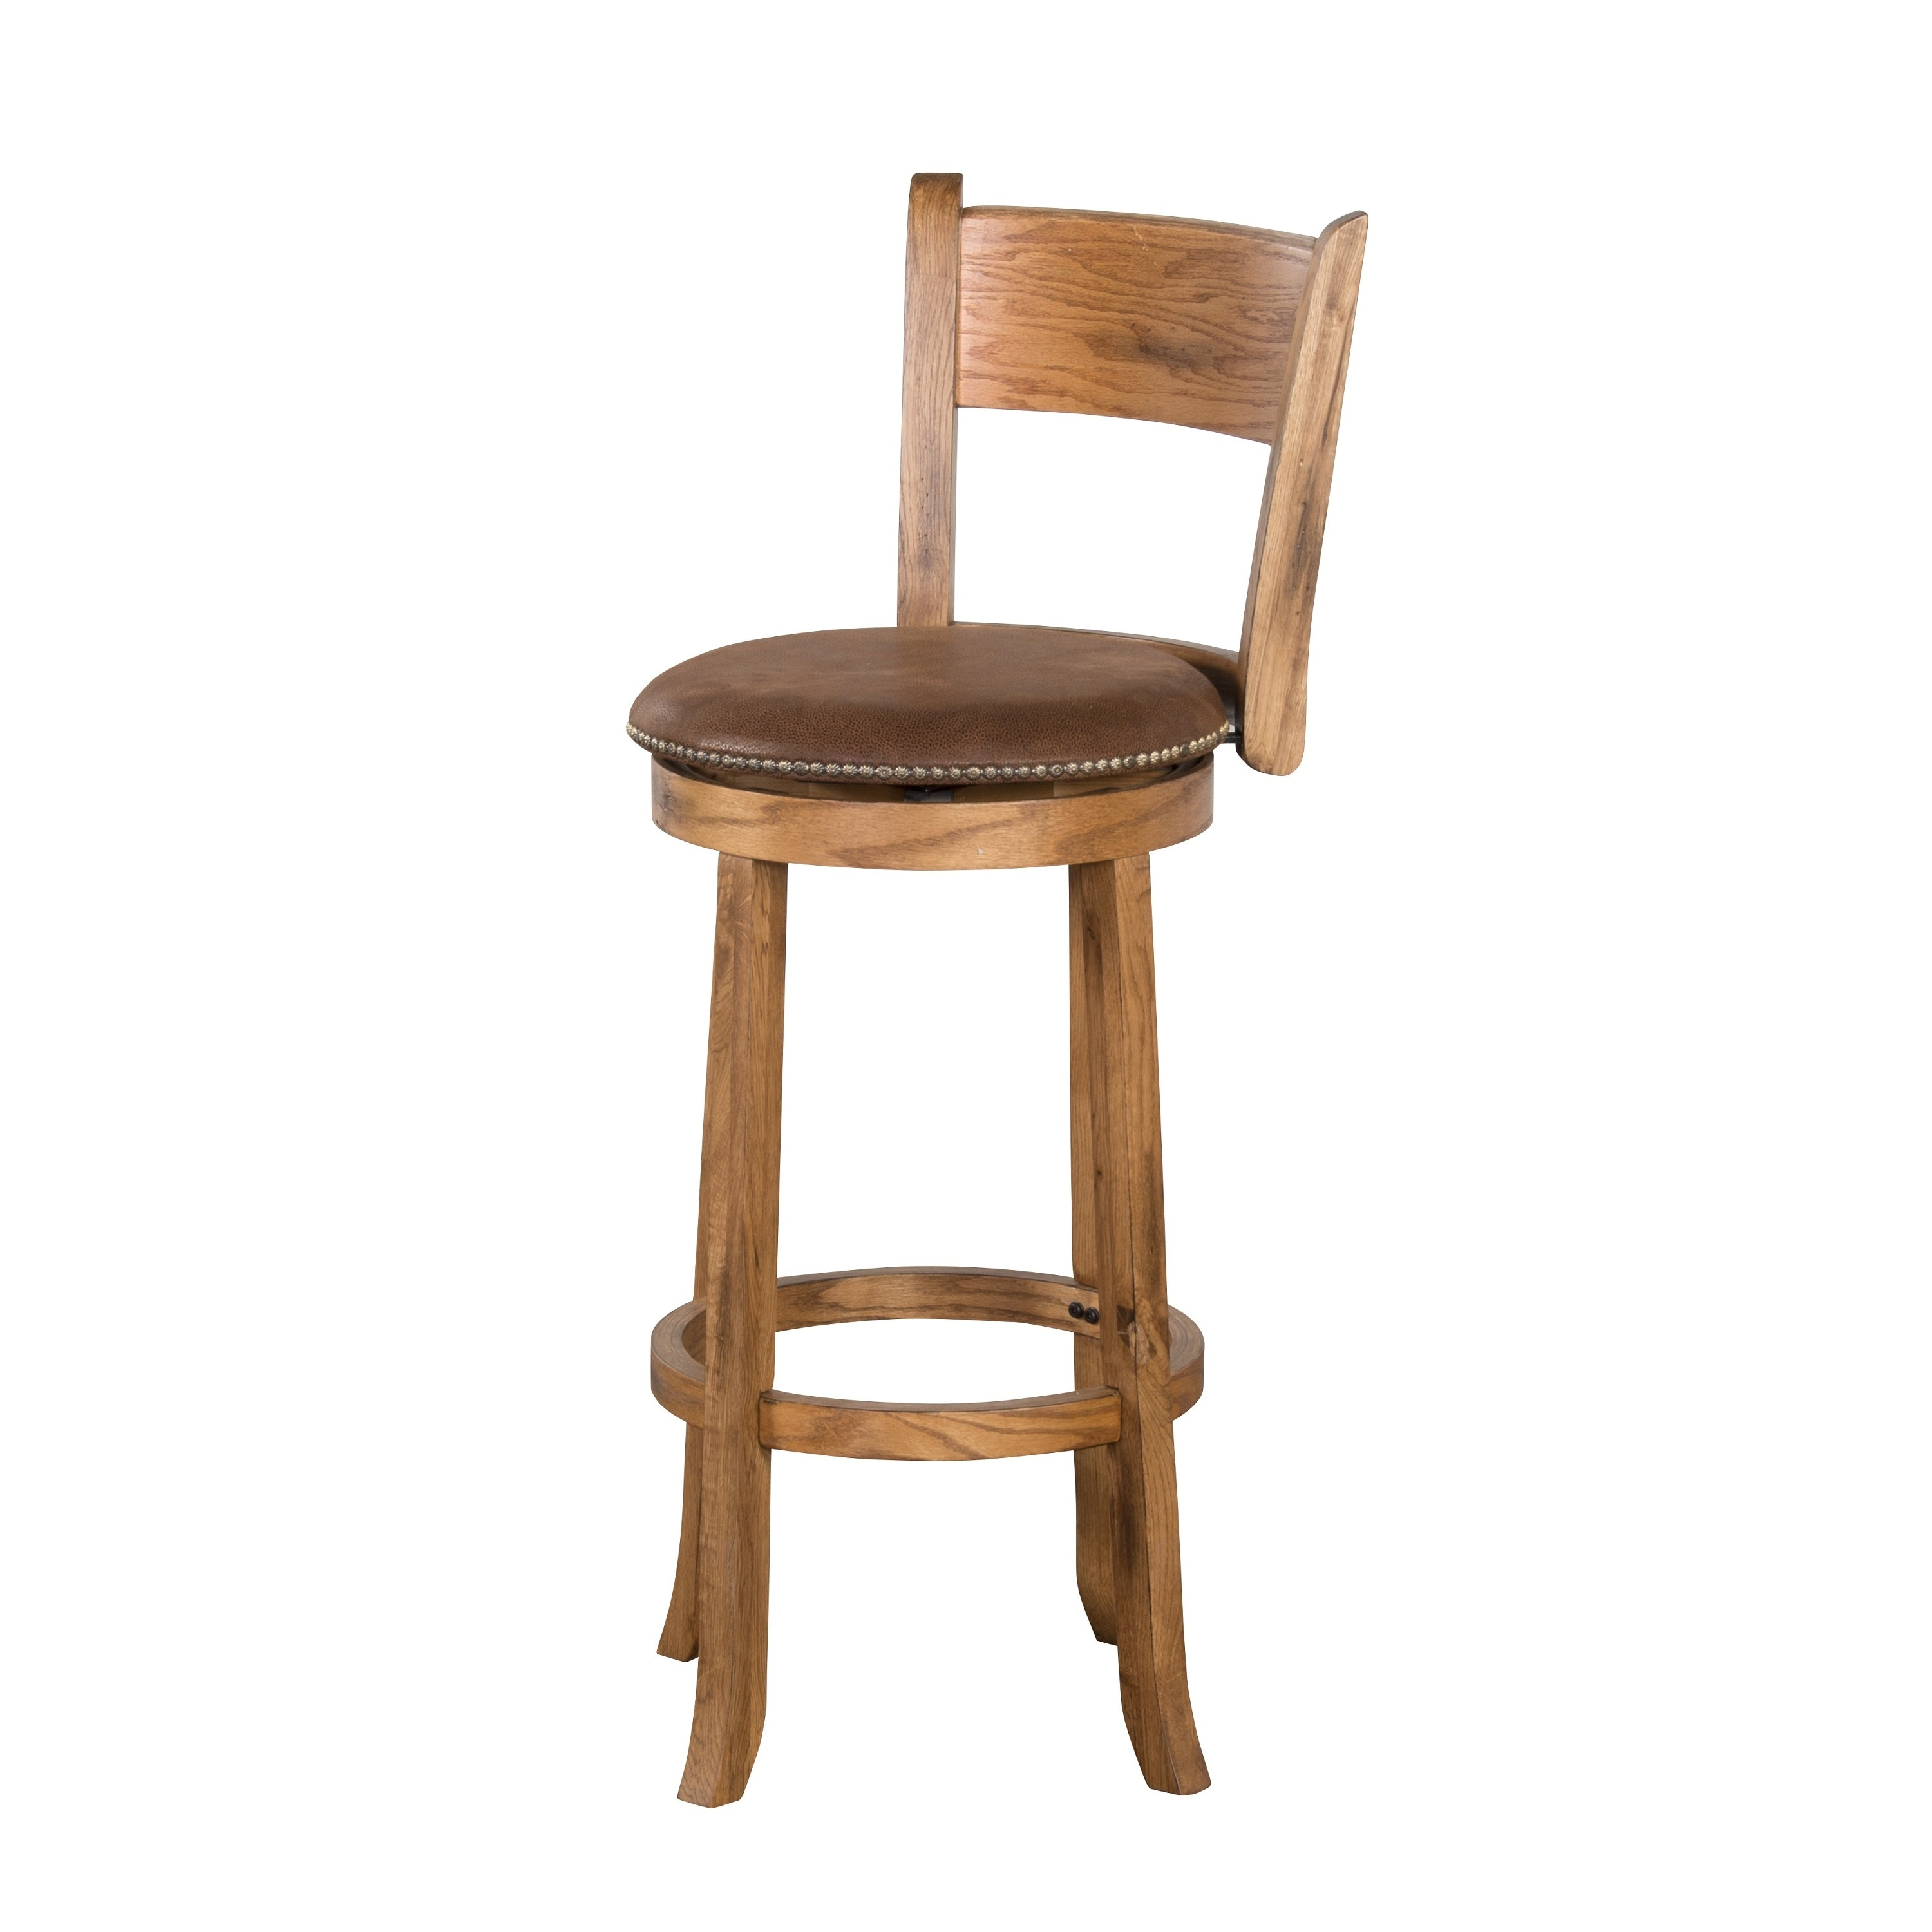 Awesome 24 Inch Bar Stools with Back